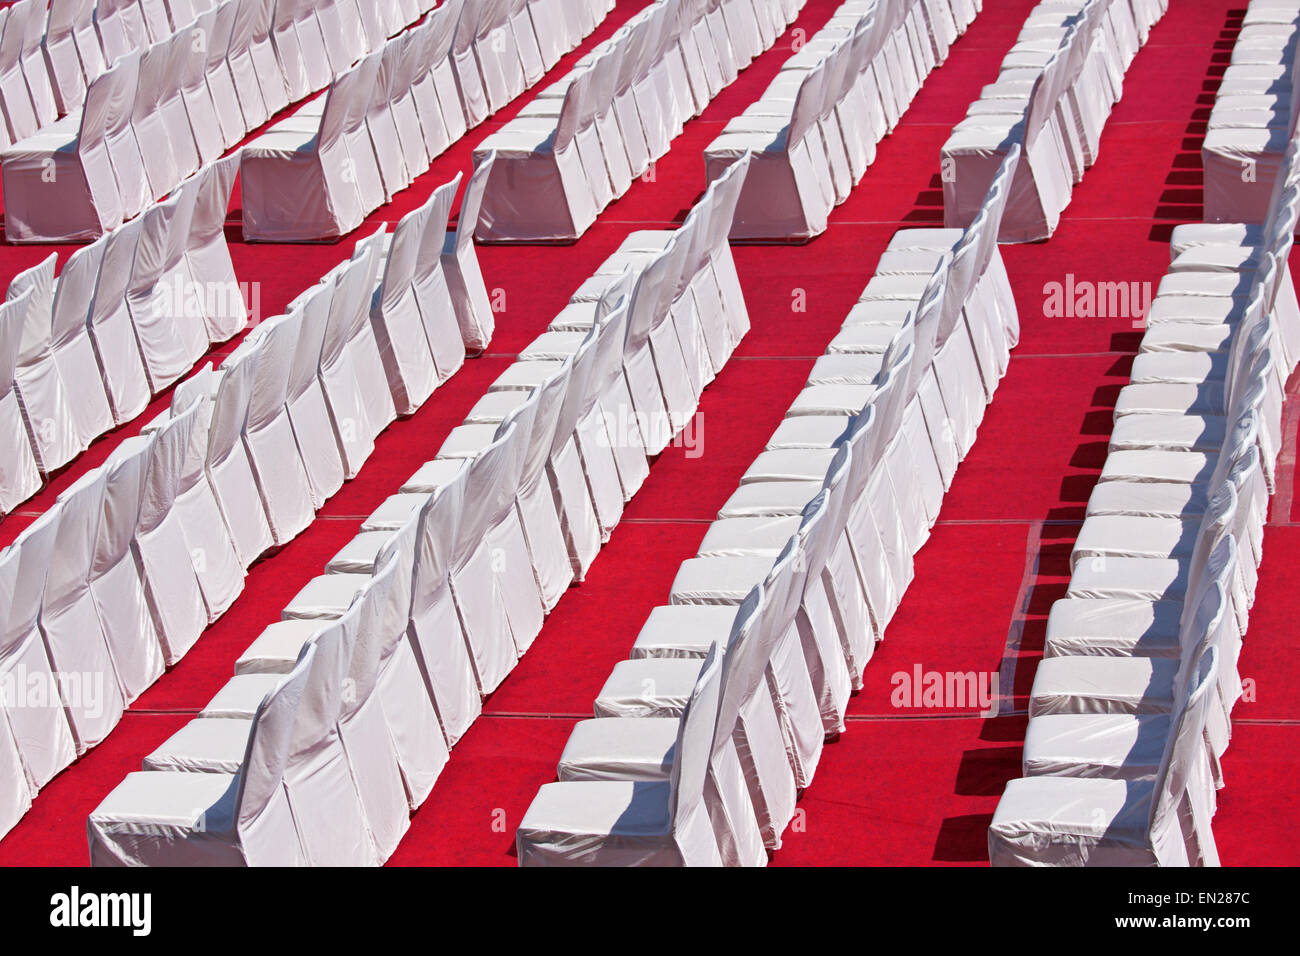 White on red pattern of rows of seats laid out in the Royal Palace at Udaipur in preparation for a Hindu festival - Stock Image